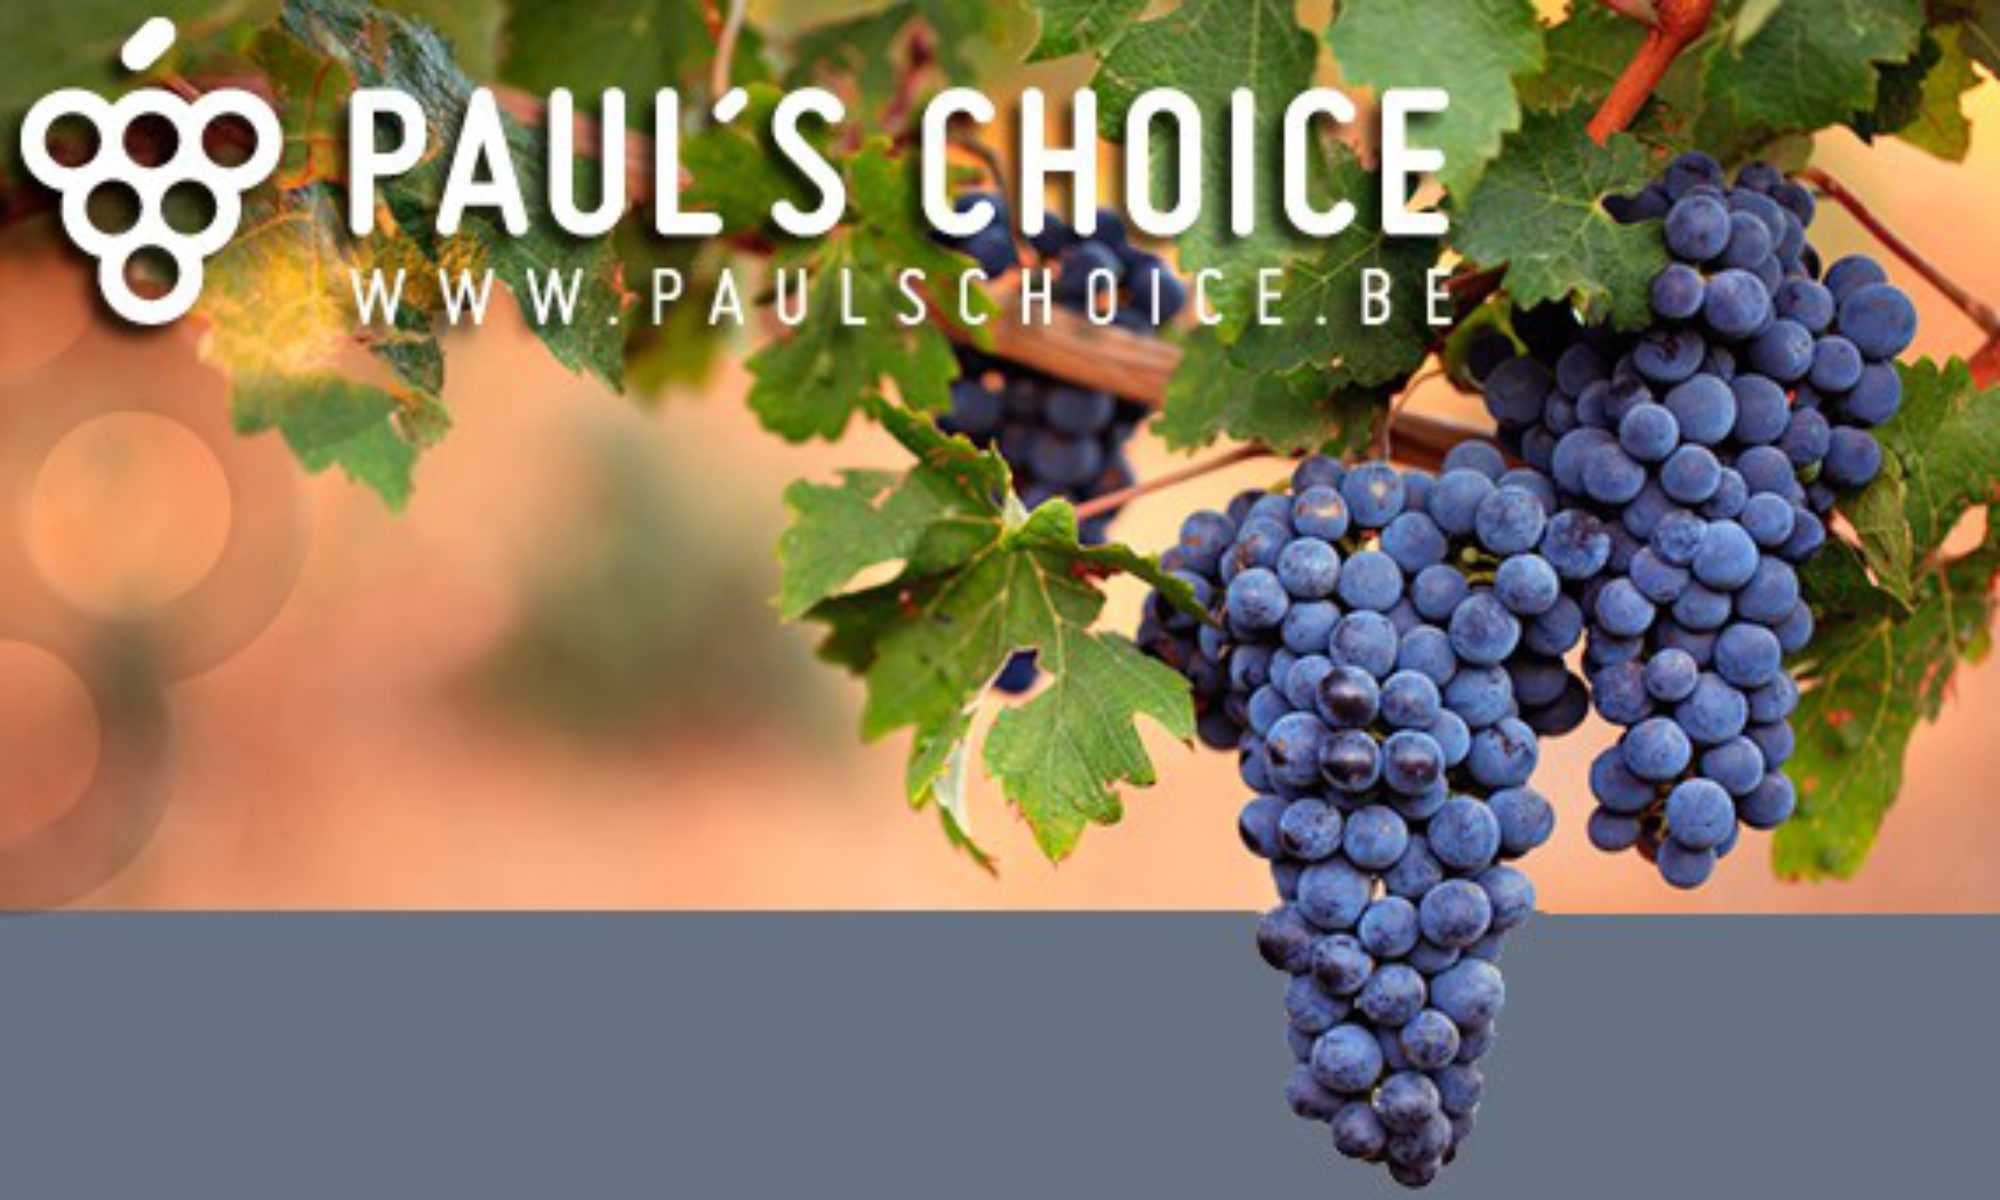 PAUL'S CHOICE